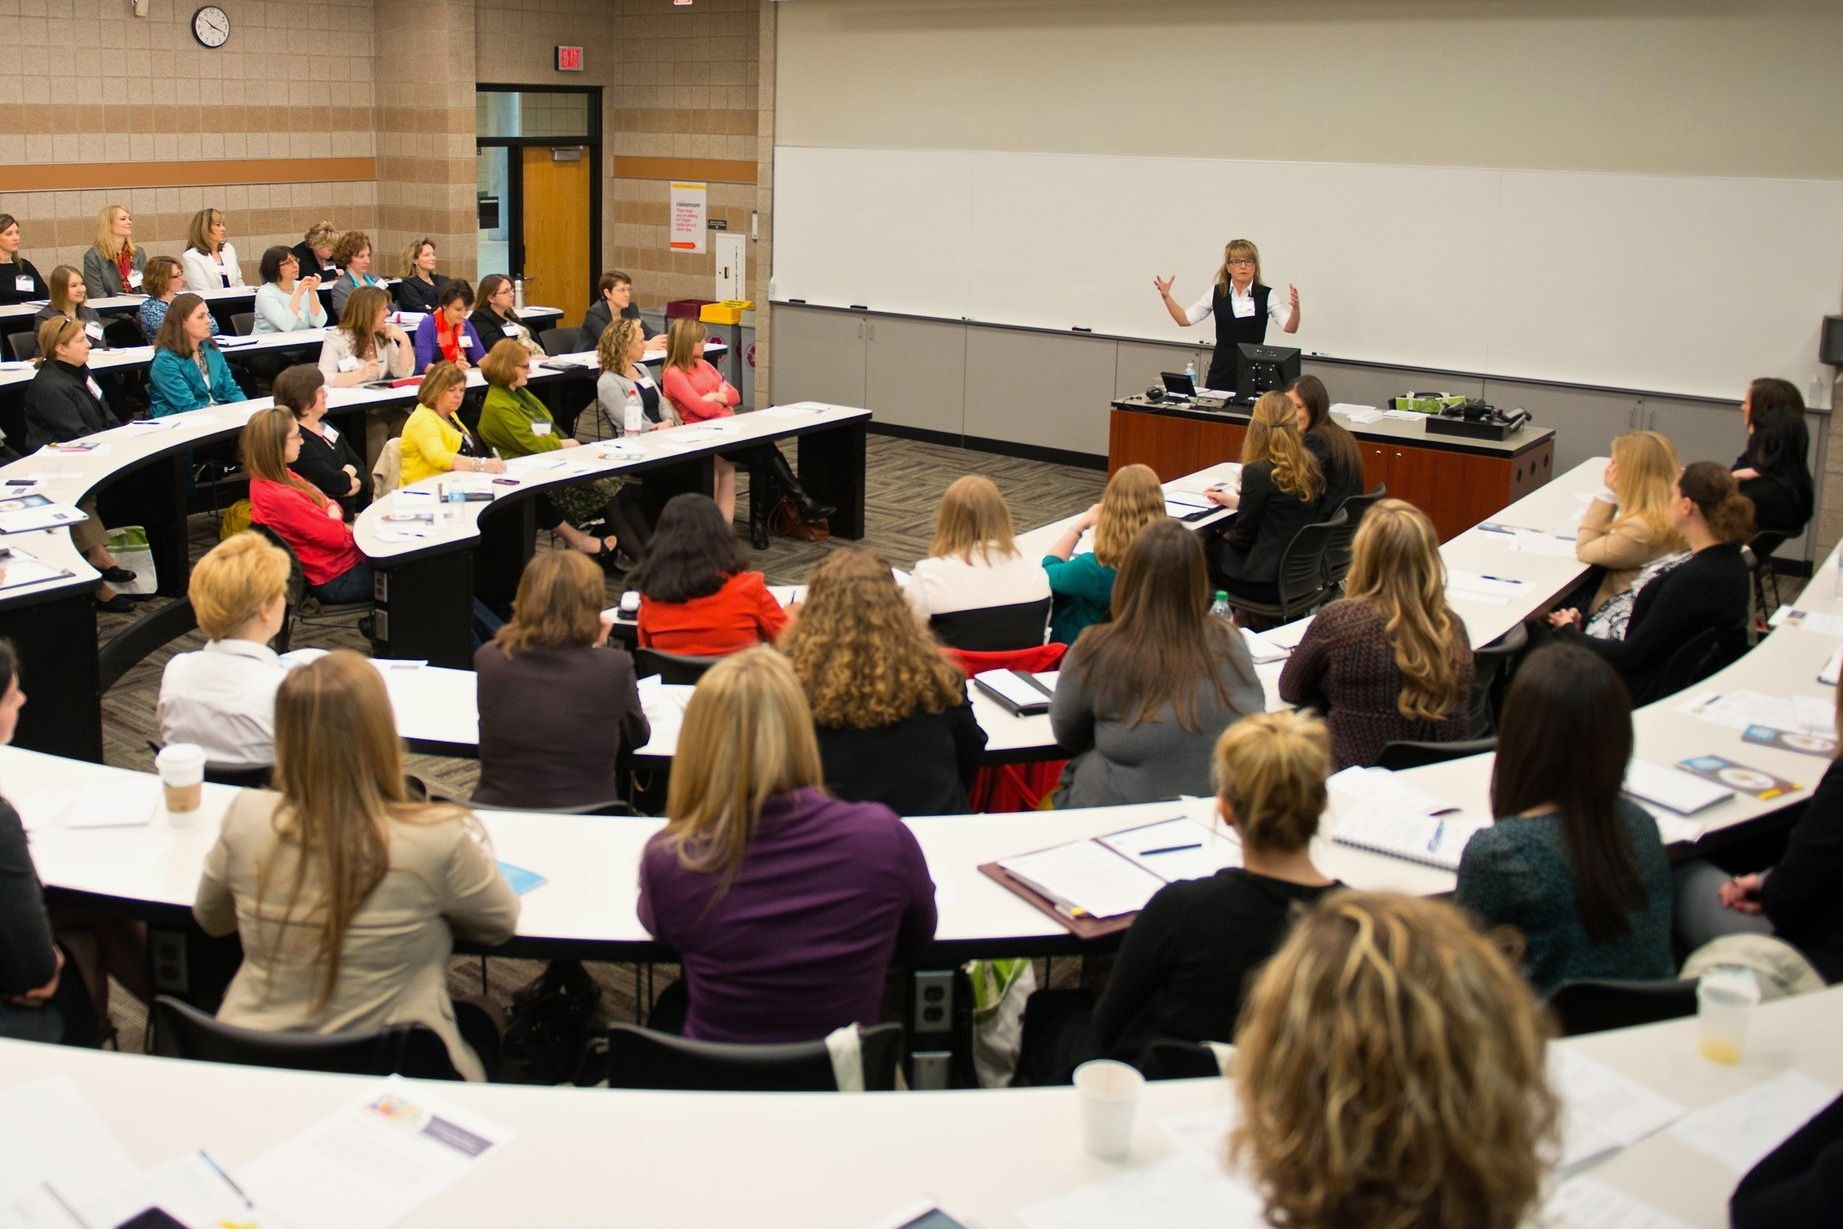 WomensLeadership2013_19.jpg